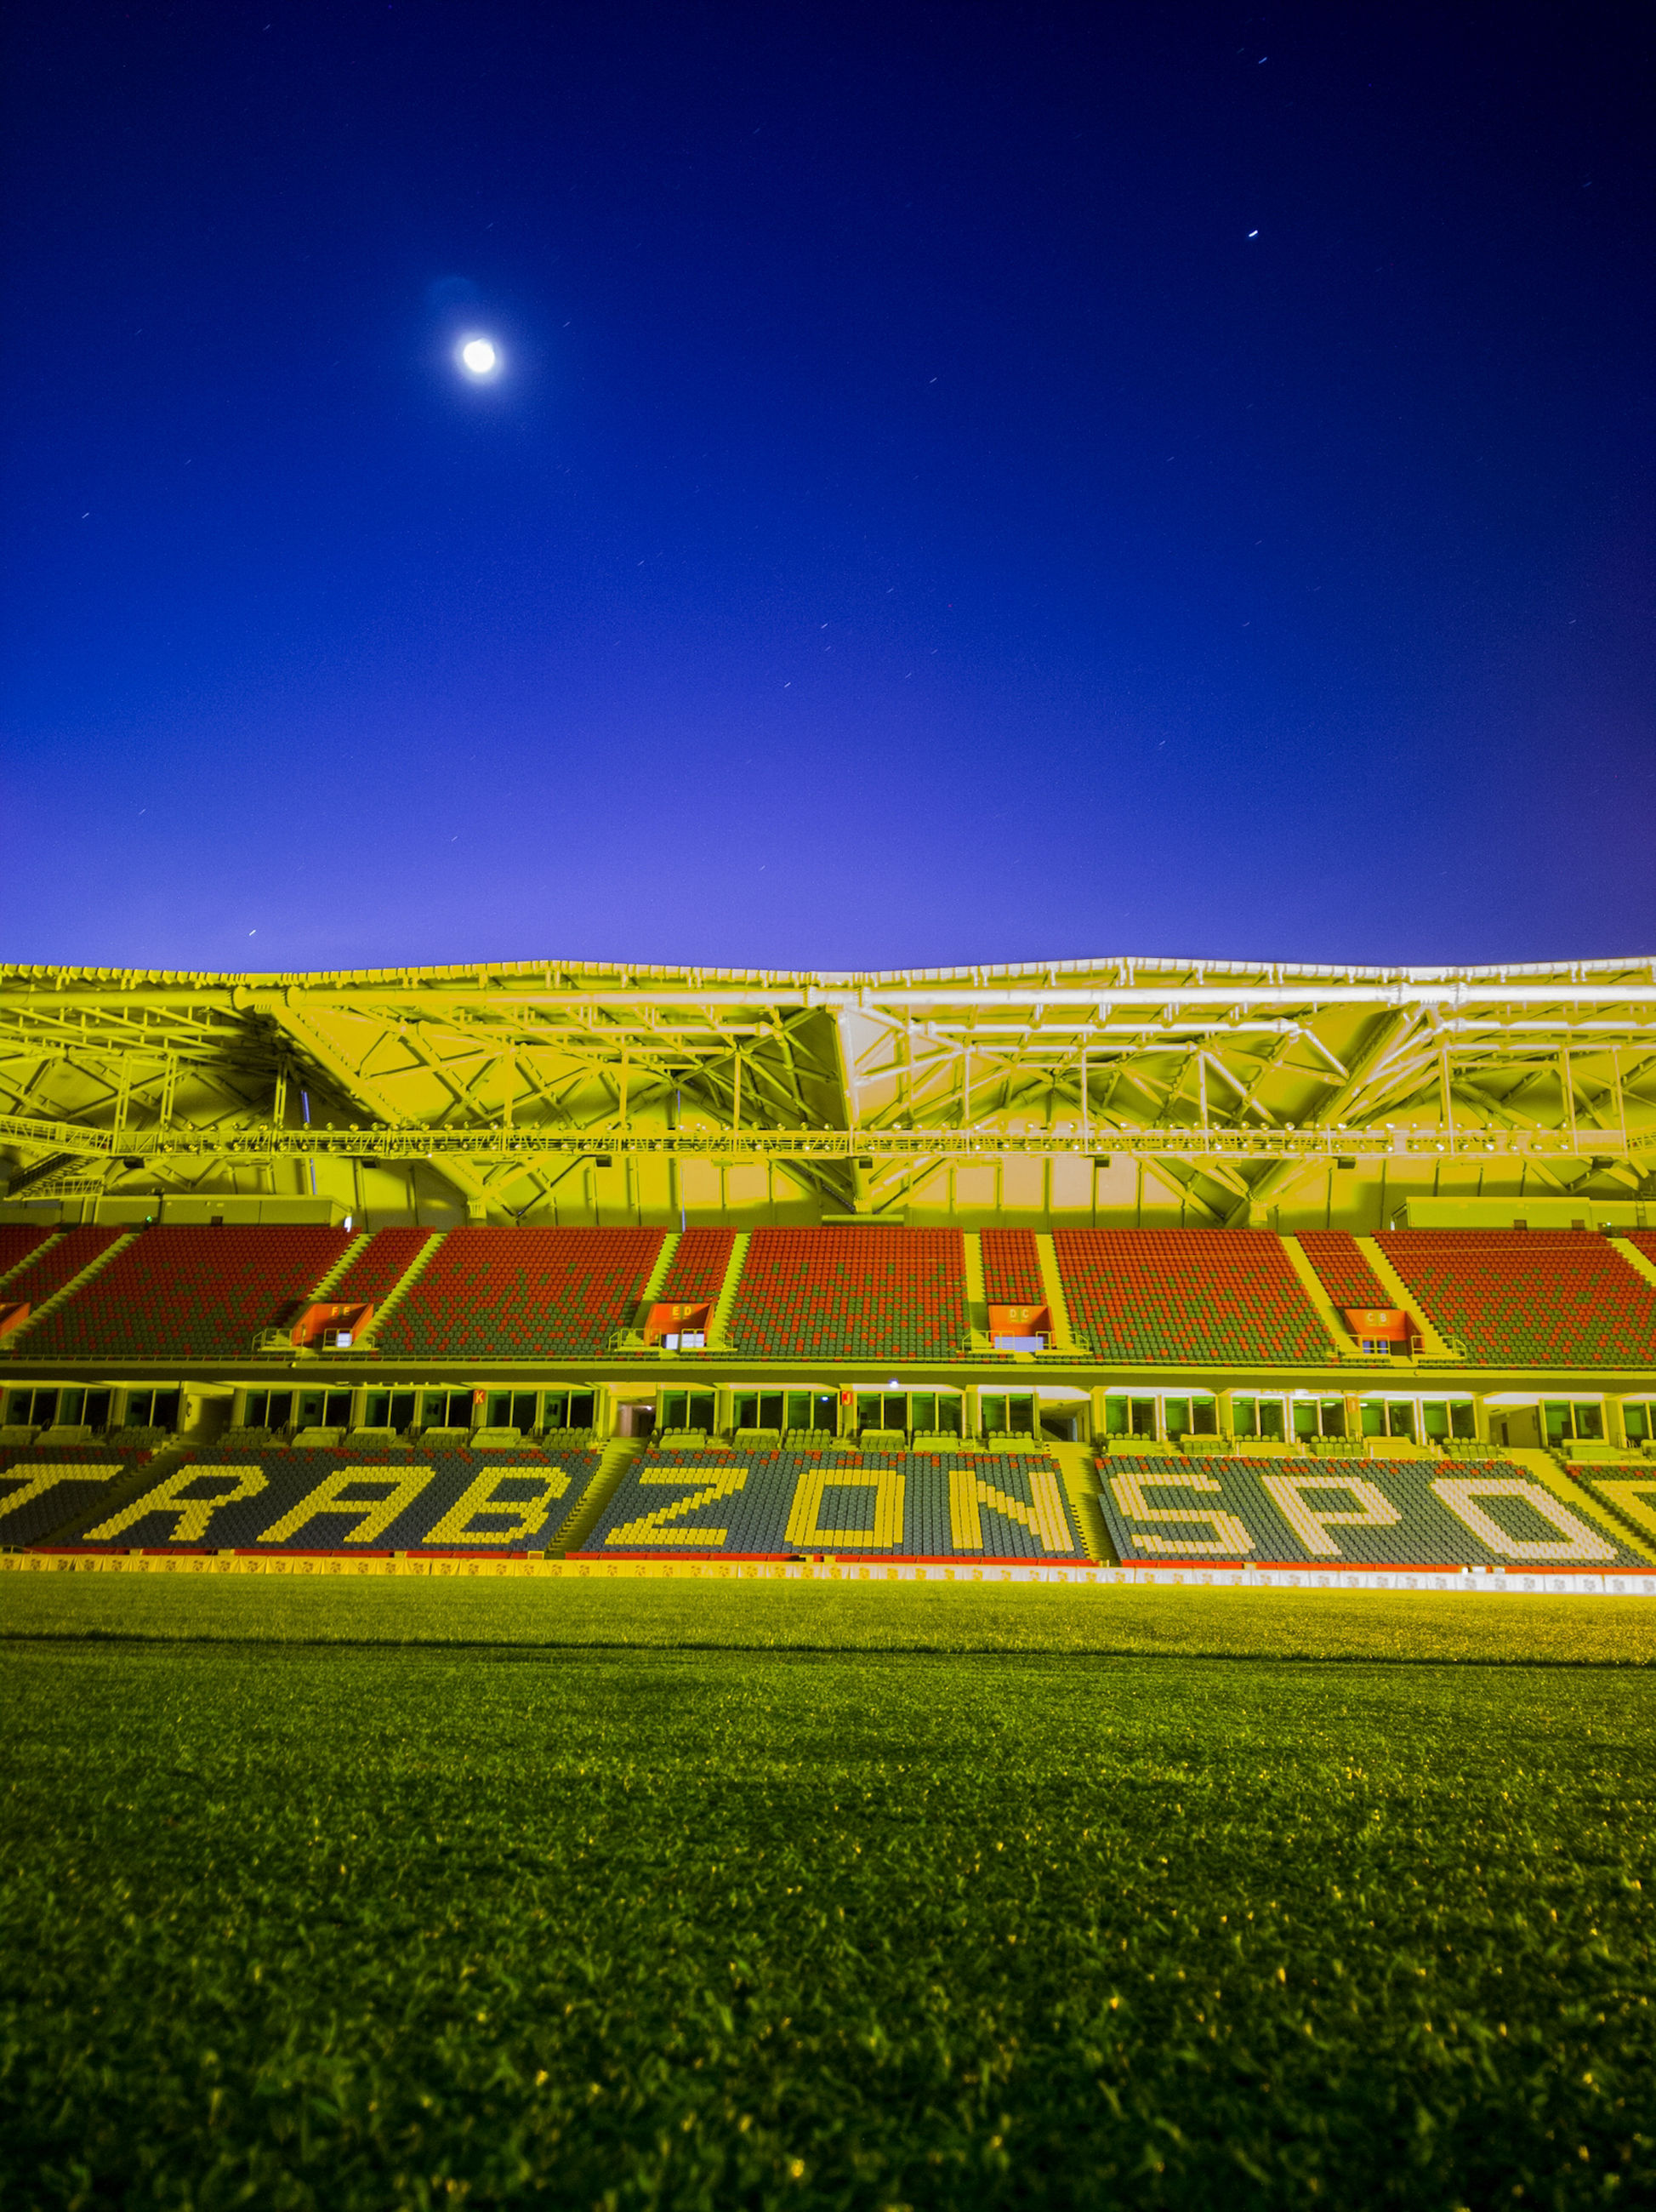 sky, night, grass, blue, field, nature, star - space, no people, land, green color, scenics - nature, landscape, outdoors, stadium, clear sky, environment, beauty in nature, tranquil scene, sport, moon, moonlight